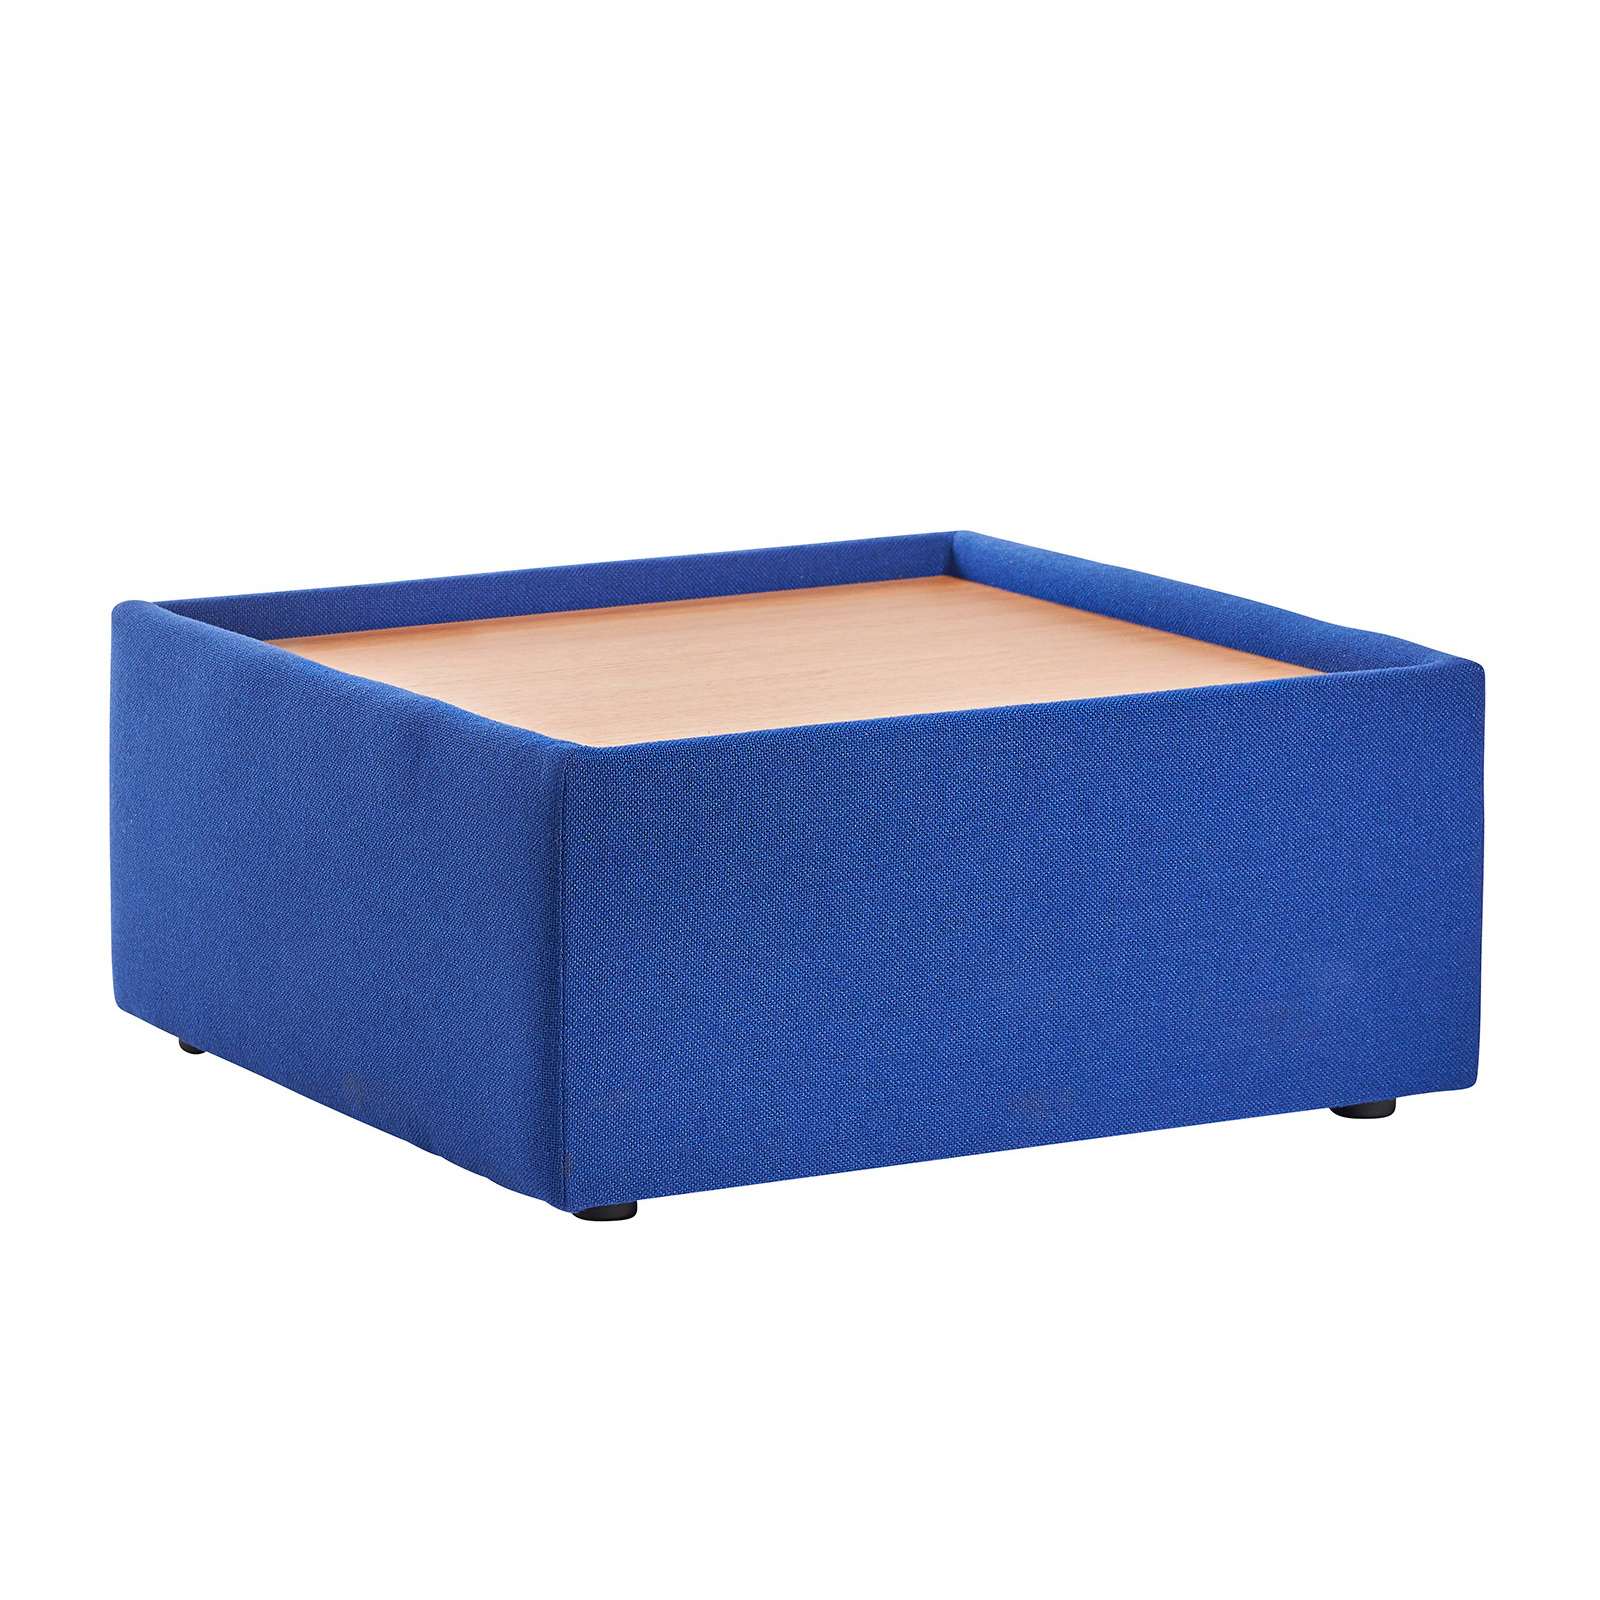 Compare prices for Alto modular Reception Seating Wooden Table - Blue